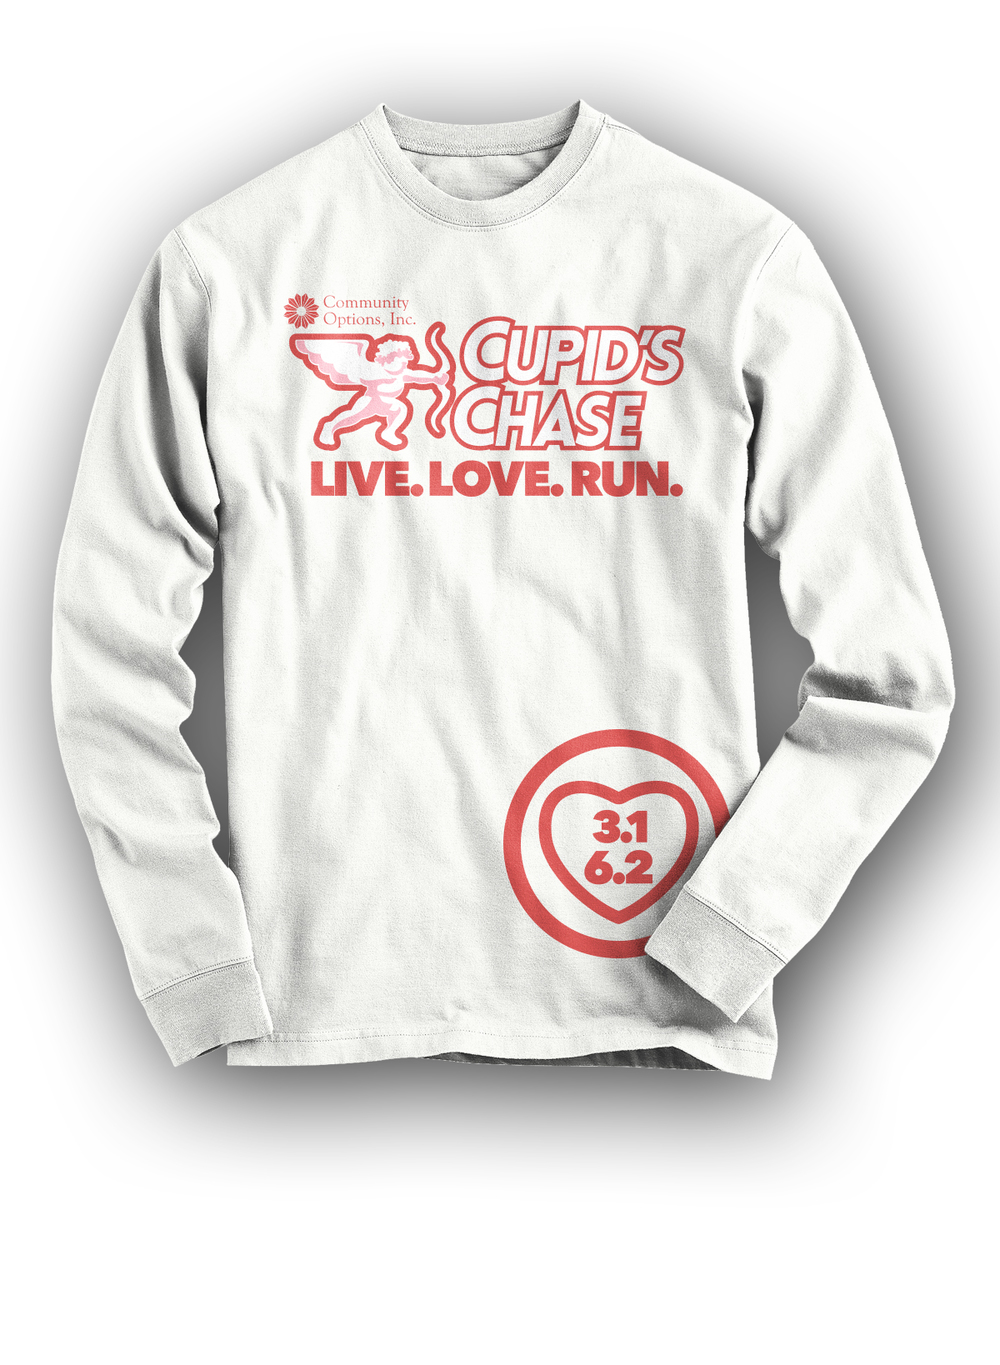 Long sleeve commemorative shirt